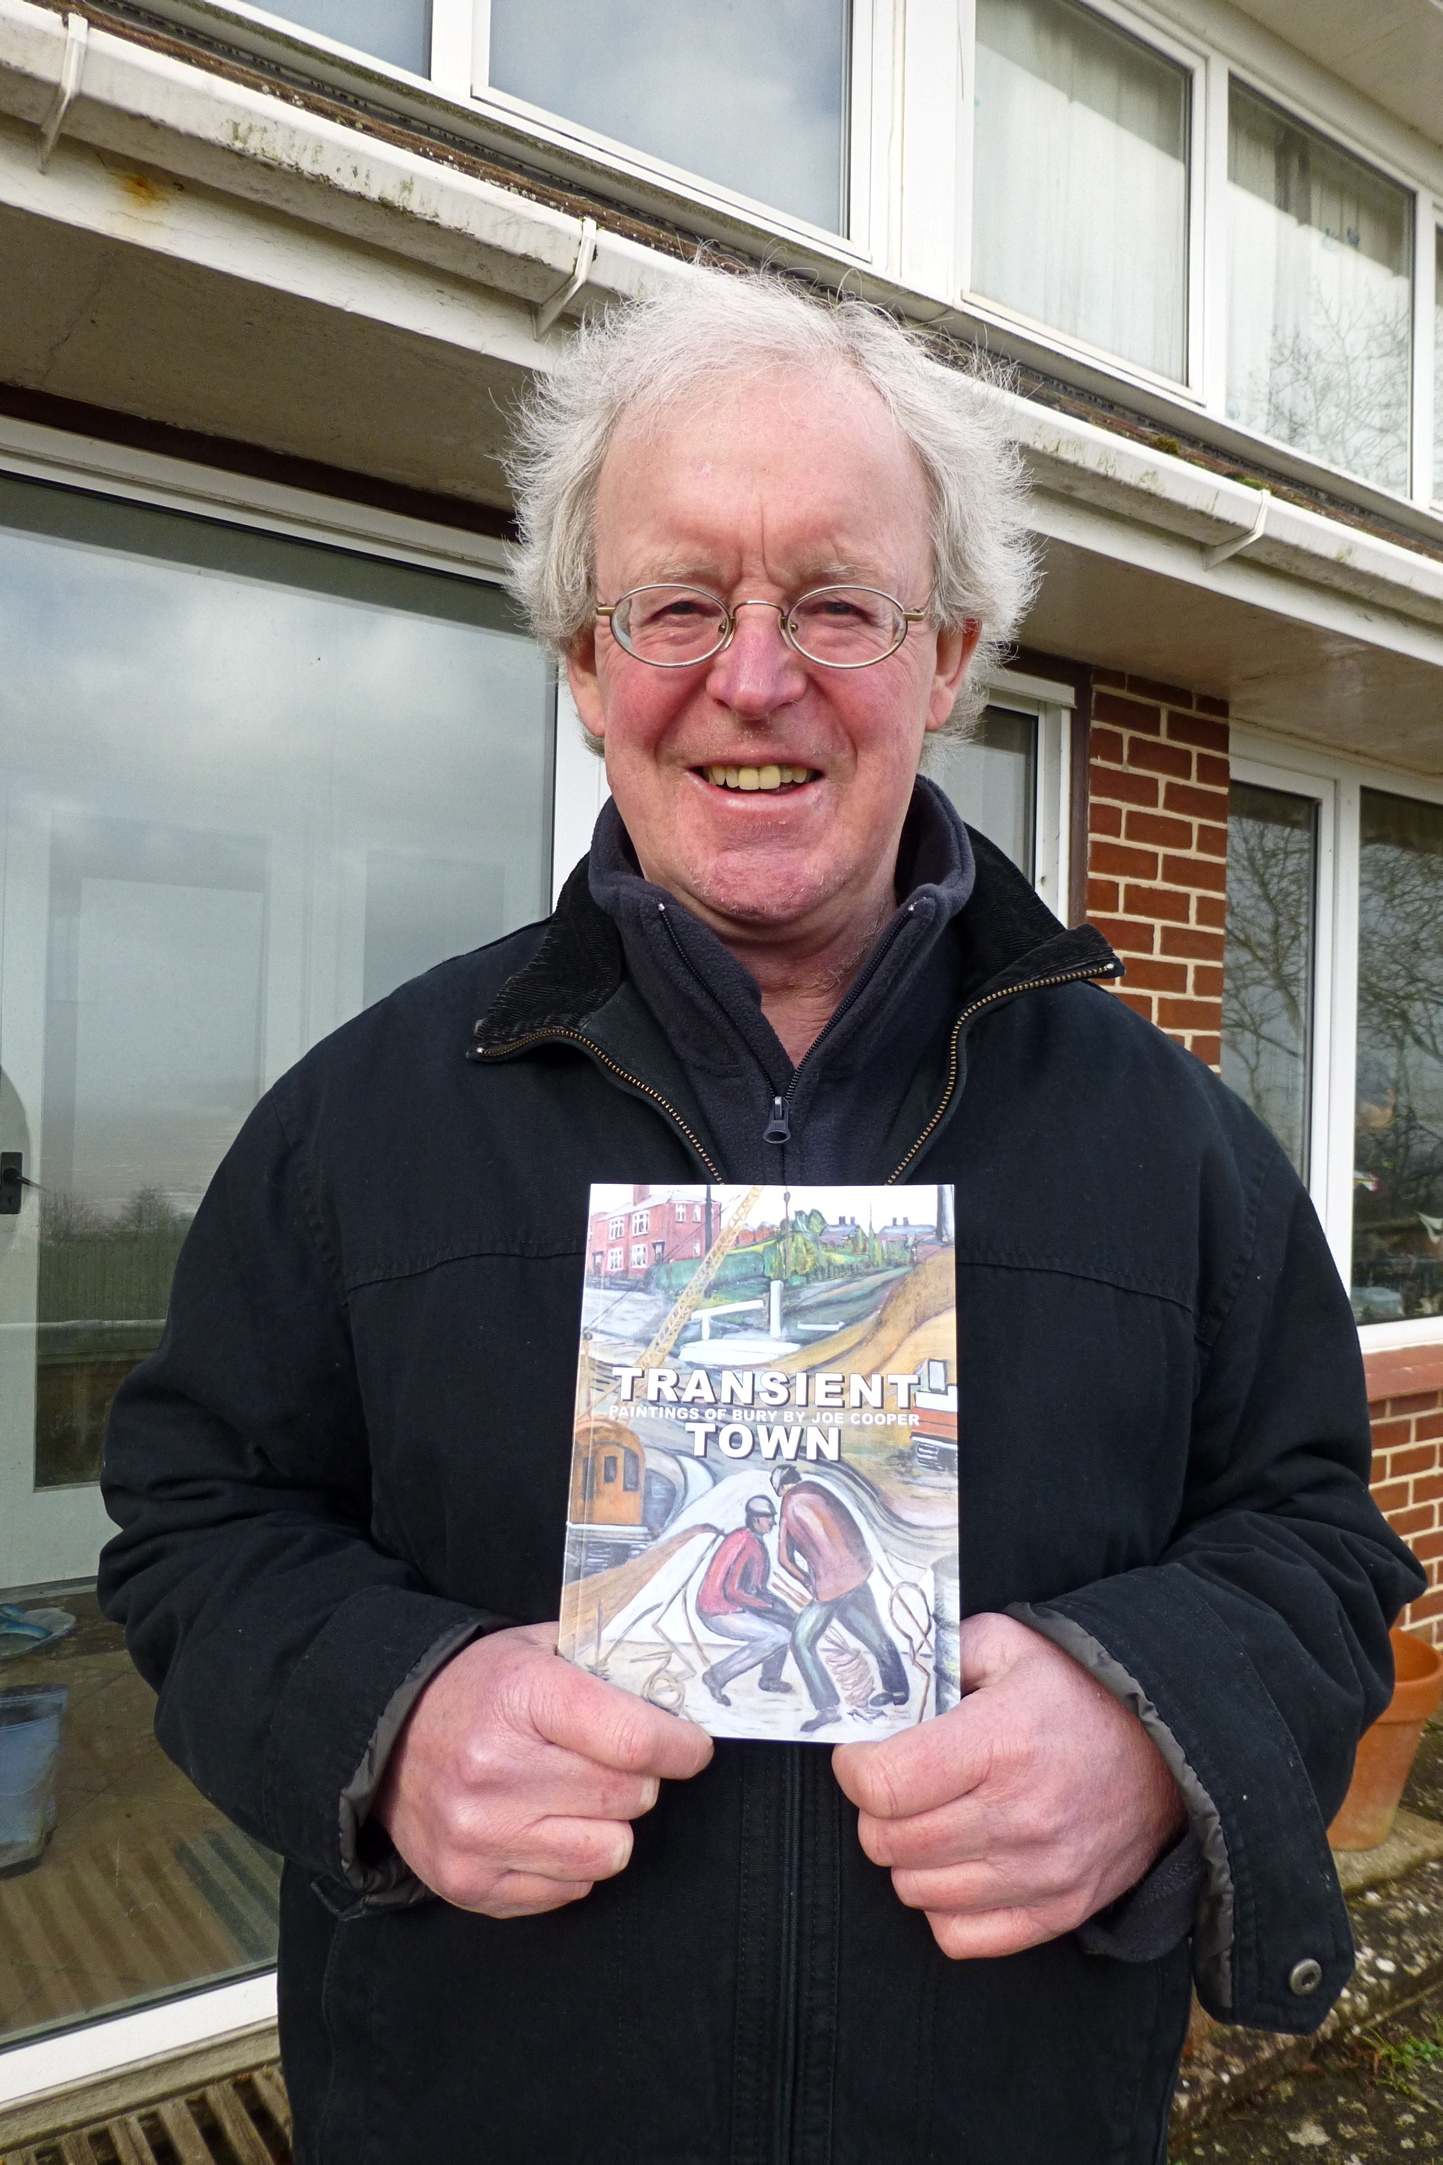 Graham Cooper with his new publication Transient Town